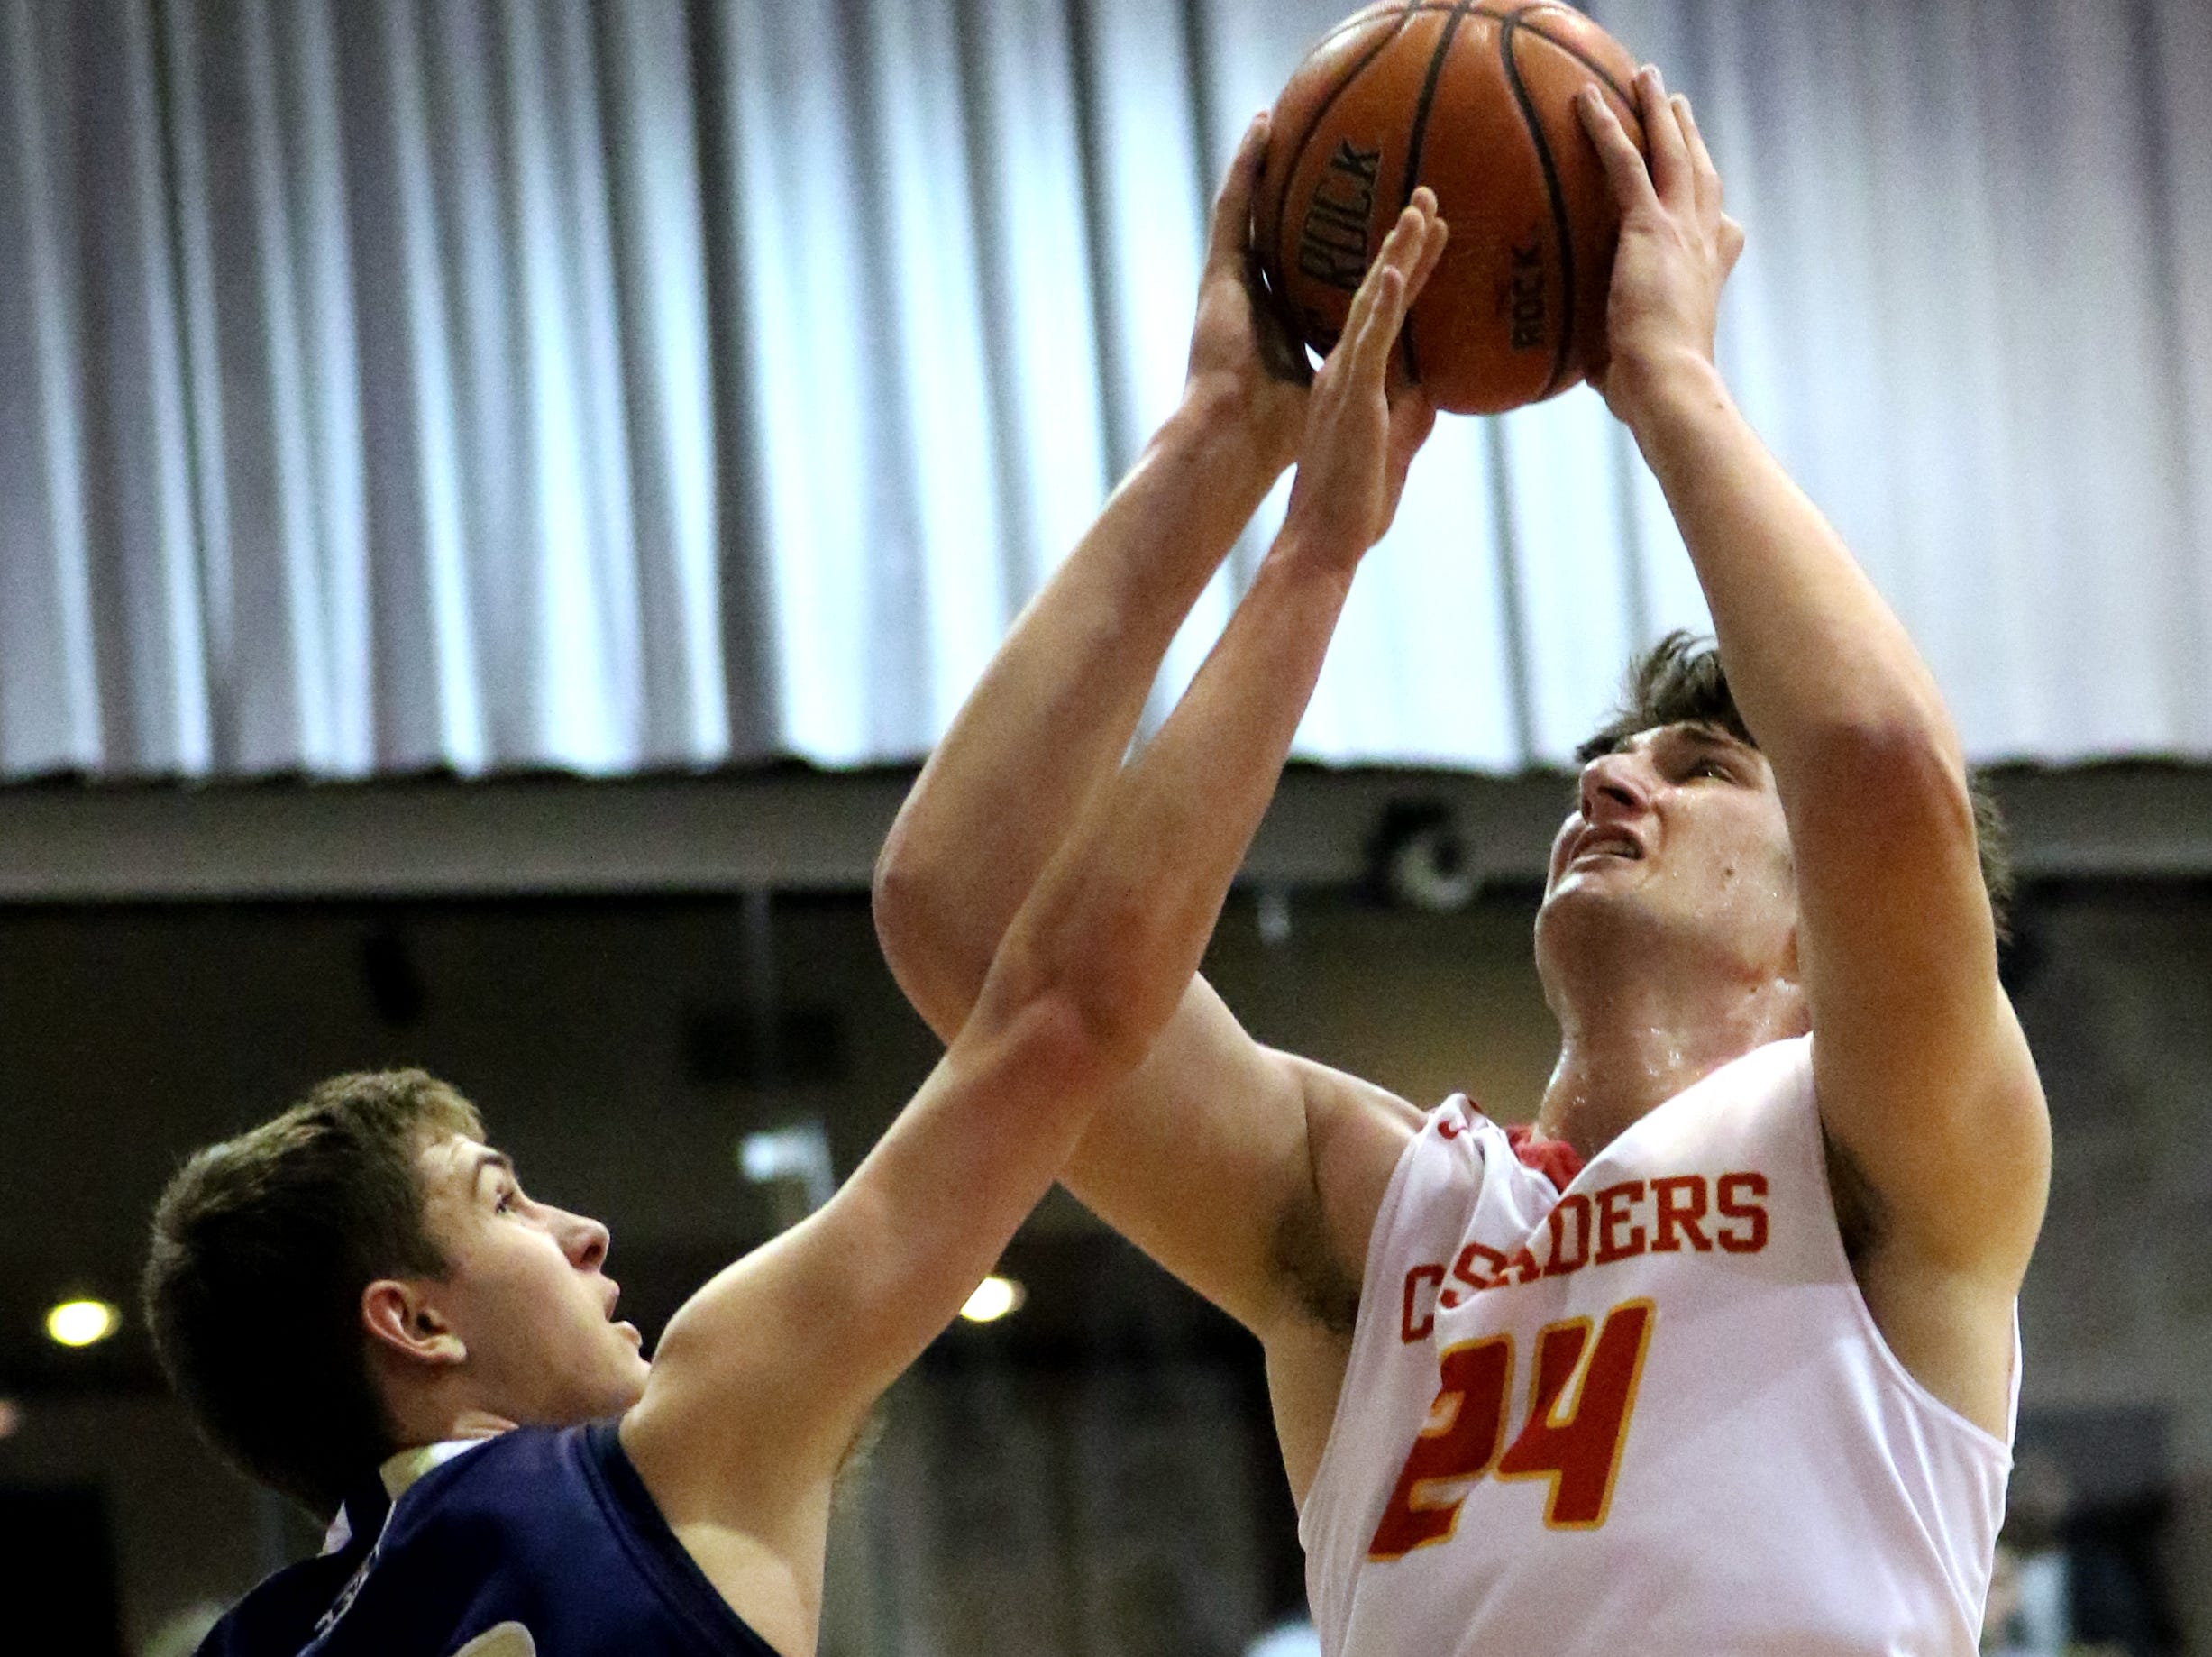 Matt Zona, of Bergen Catholic, goes for two against Steven Turk, of Ramsey.  The Crusaders went on to win, 60-50, at the Bergen County Jamboree.  Sunday, February 10, 2019